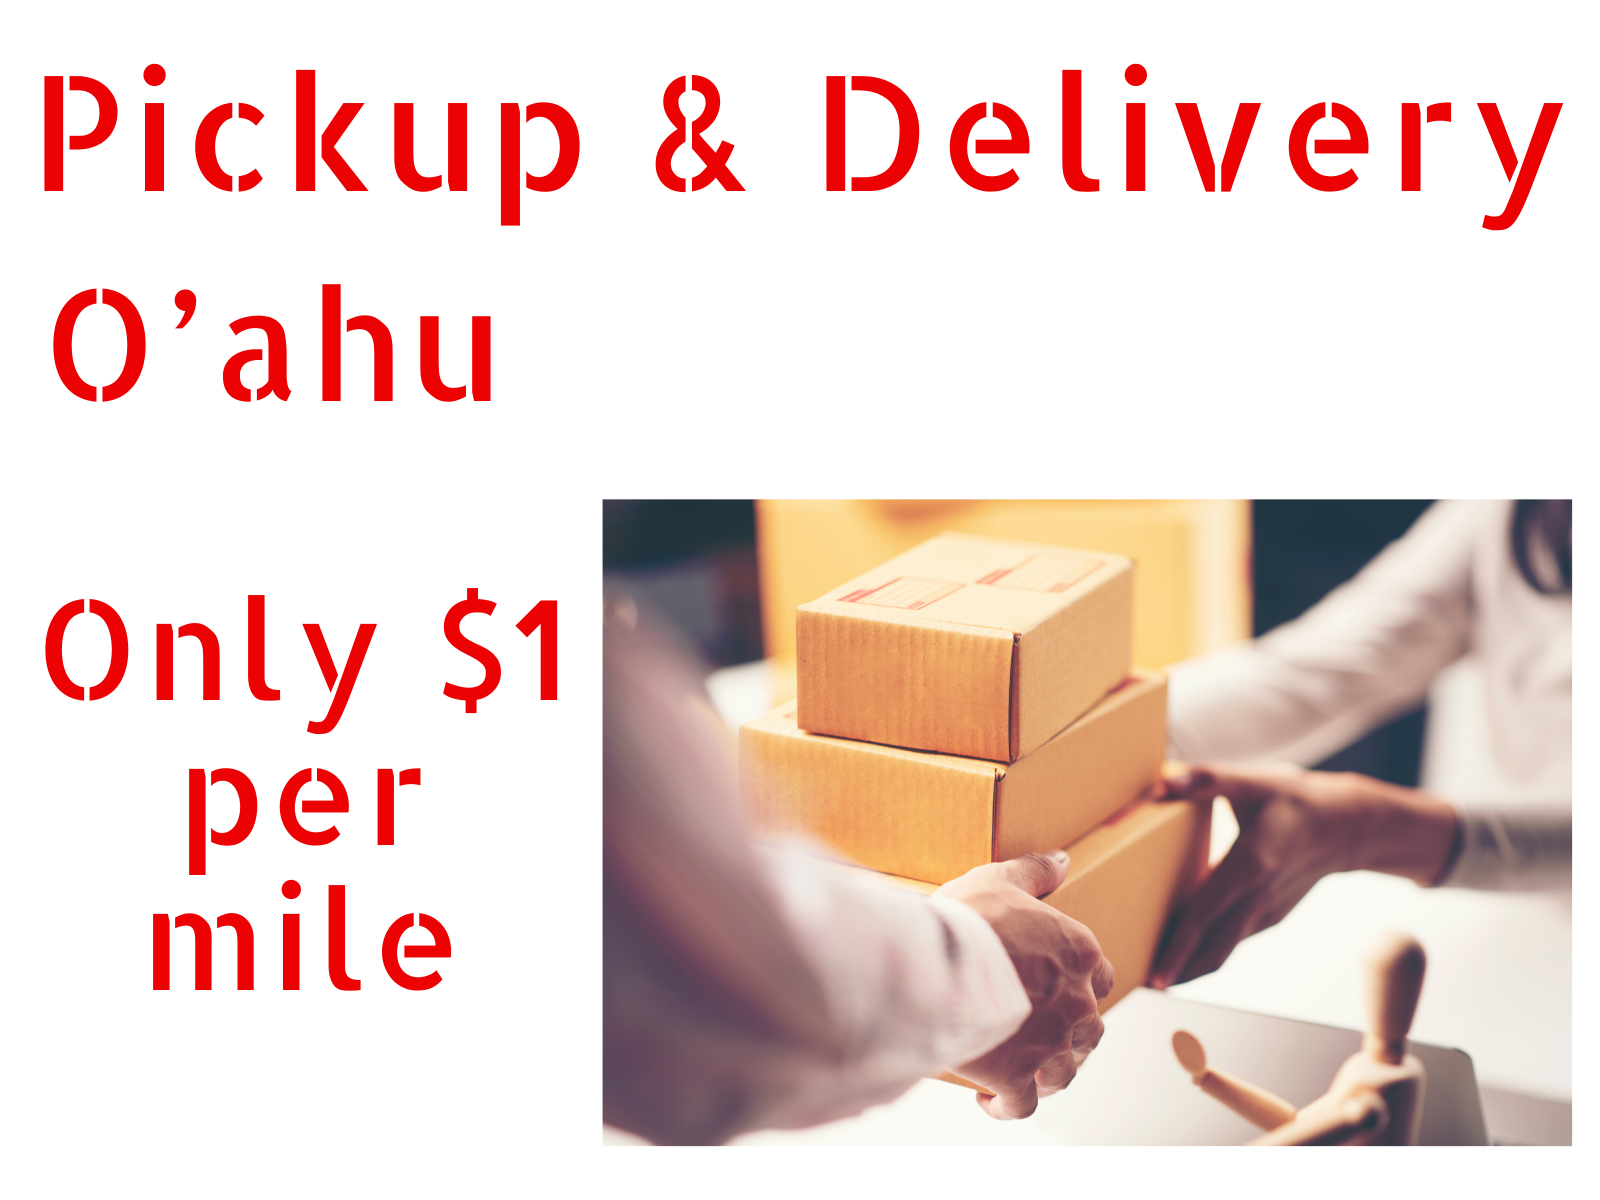 Oahu Pick up & Delivery Services